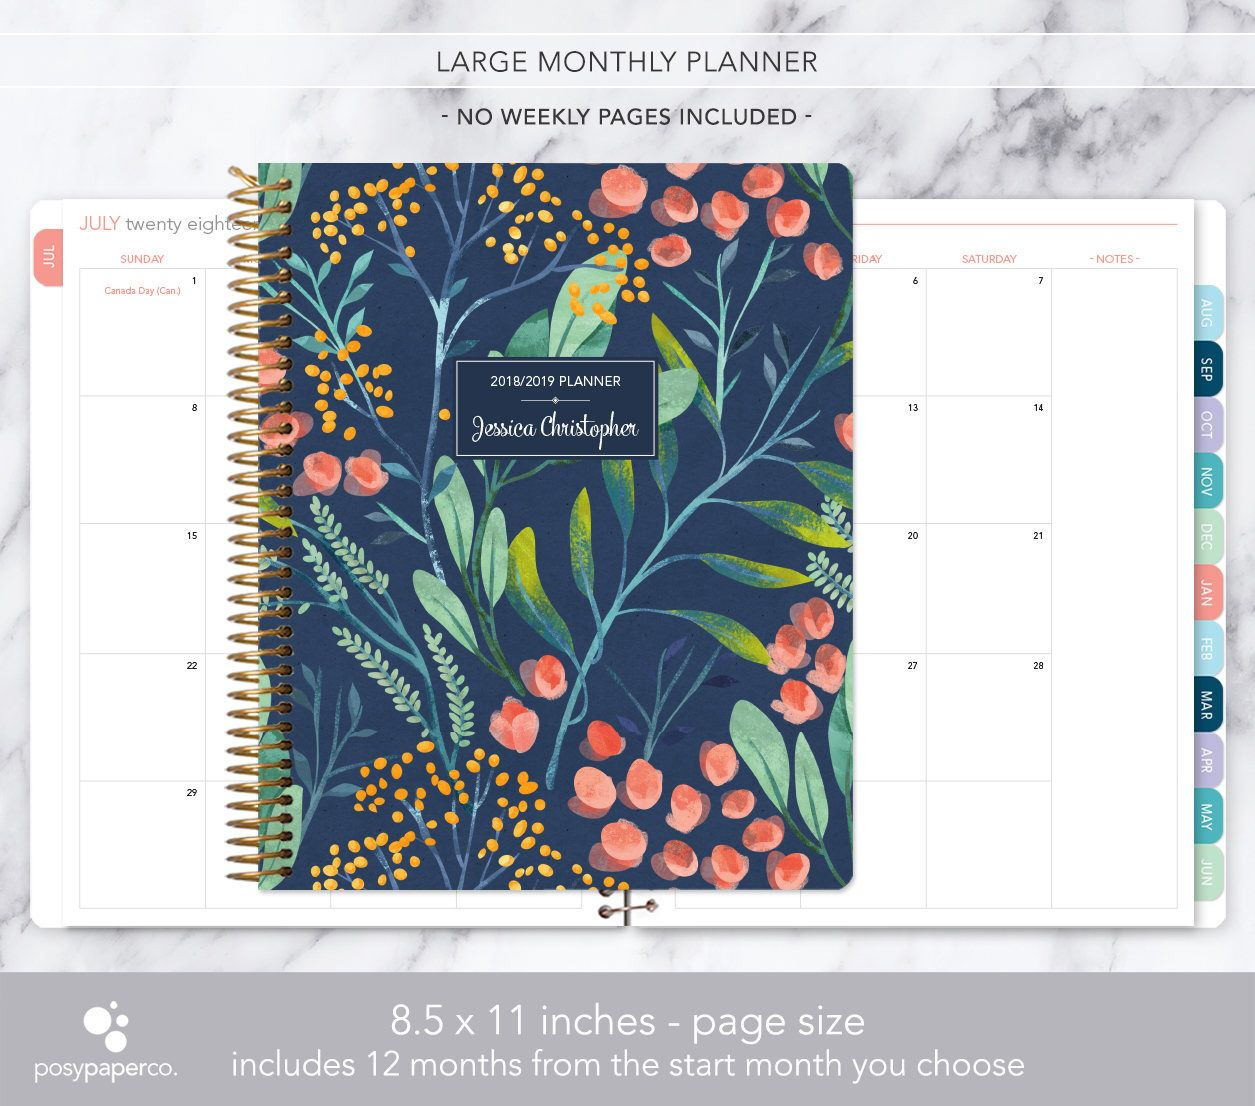 2020-2016 Academic Year Calendar 8.5x11 MONTHLY PLANNER notebook | 2019 2020 no weekly view